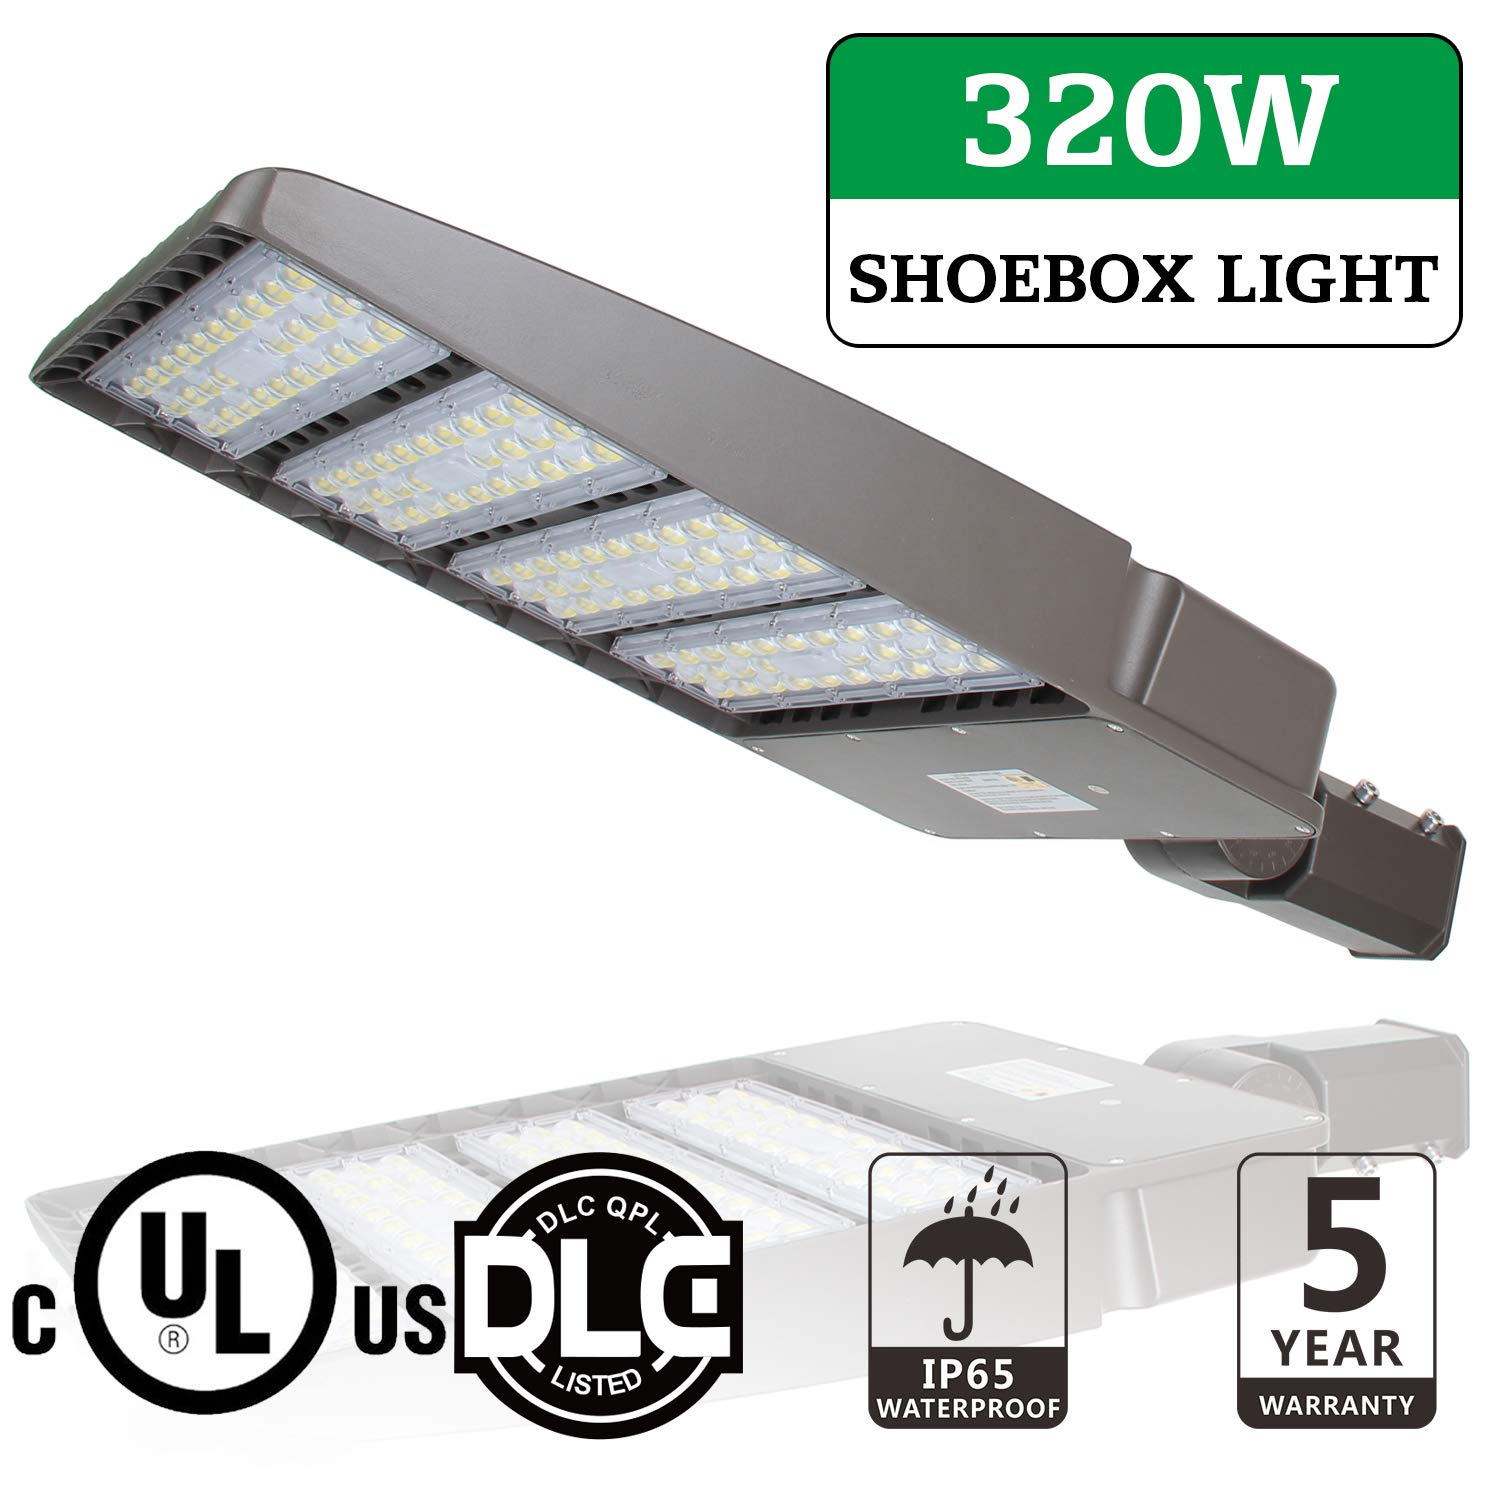 LED Parking Lot Lights, KUKUPPO 320W Pole Mounted Shoebox Lights Fixture Outdoor Commercial Street Area Security Lighting Slip Fitter - AC100~277V, 43200LM, 5700K, IP65, DLC UL Listed